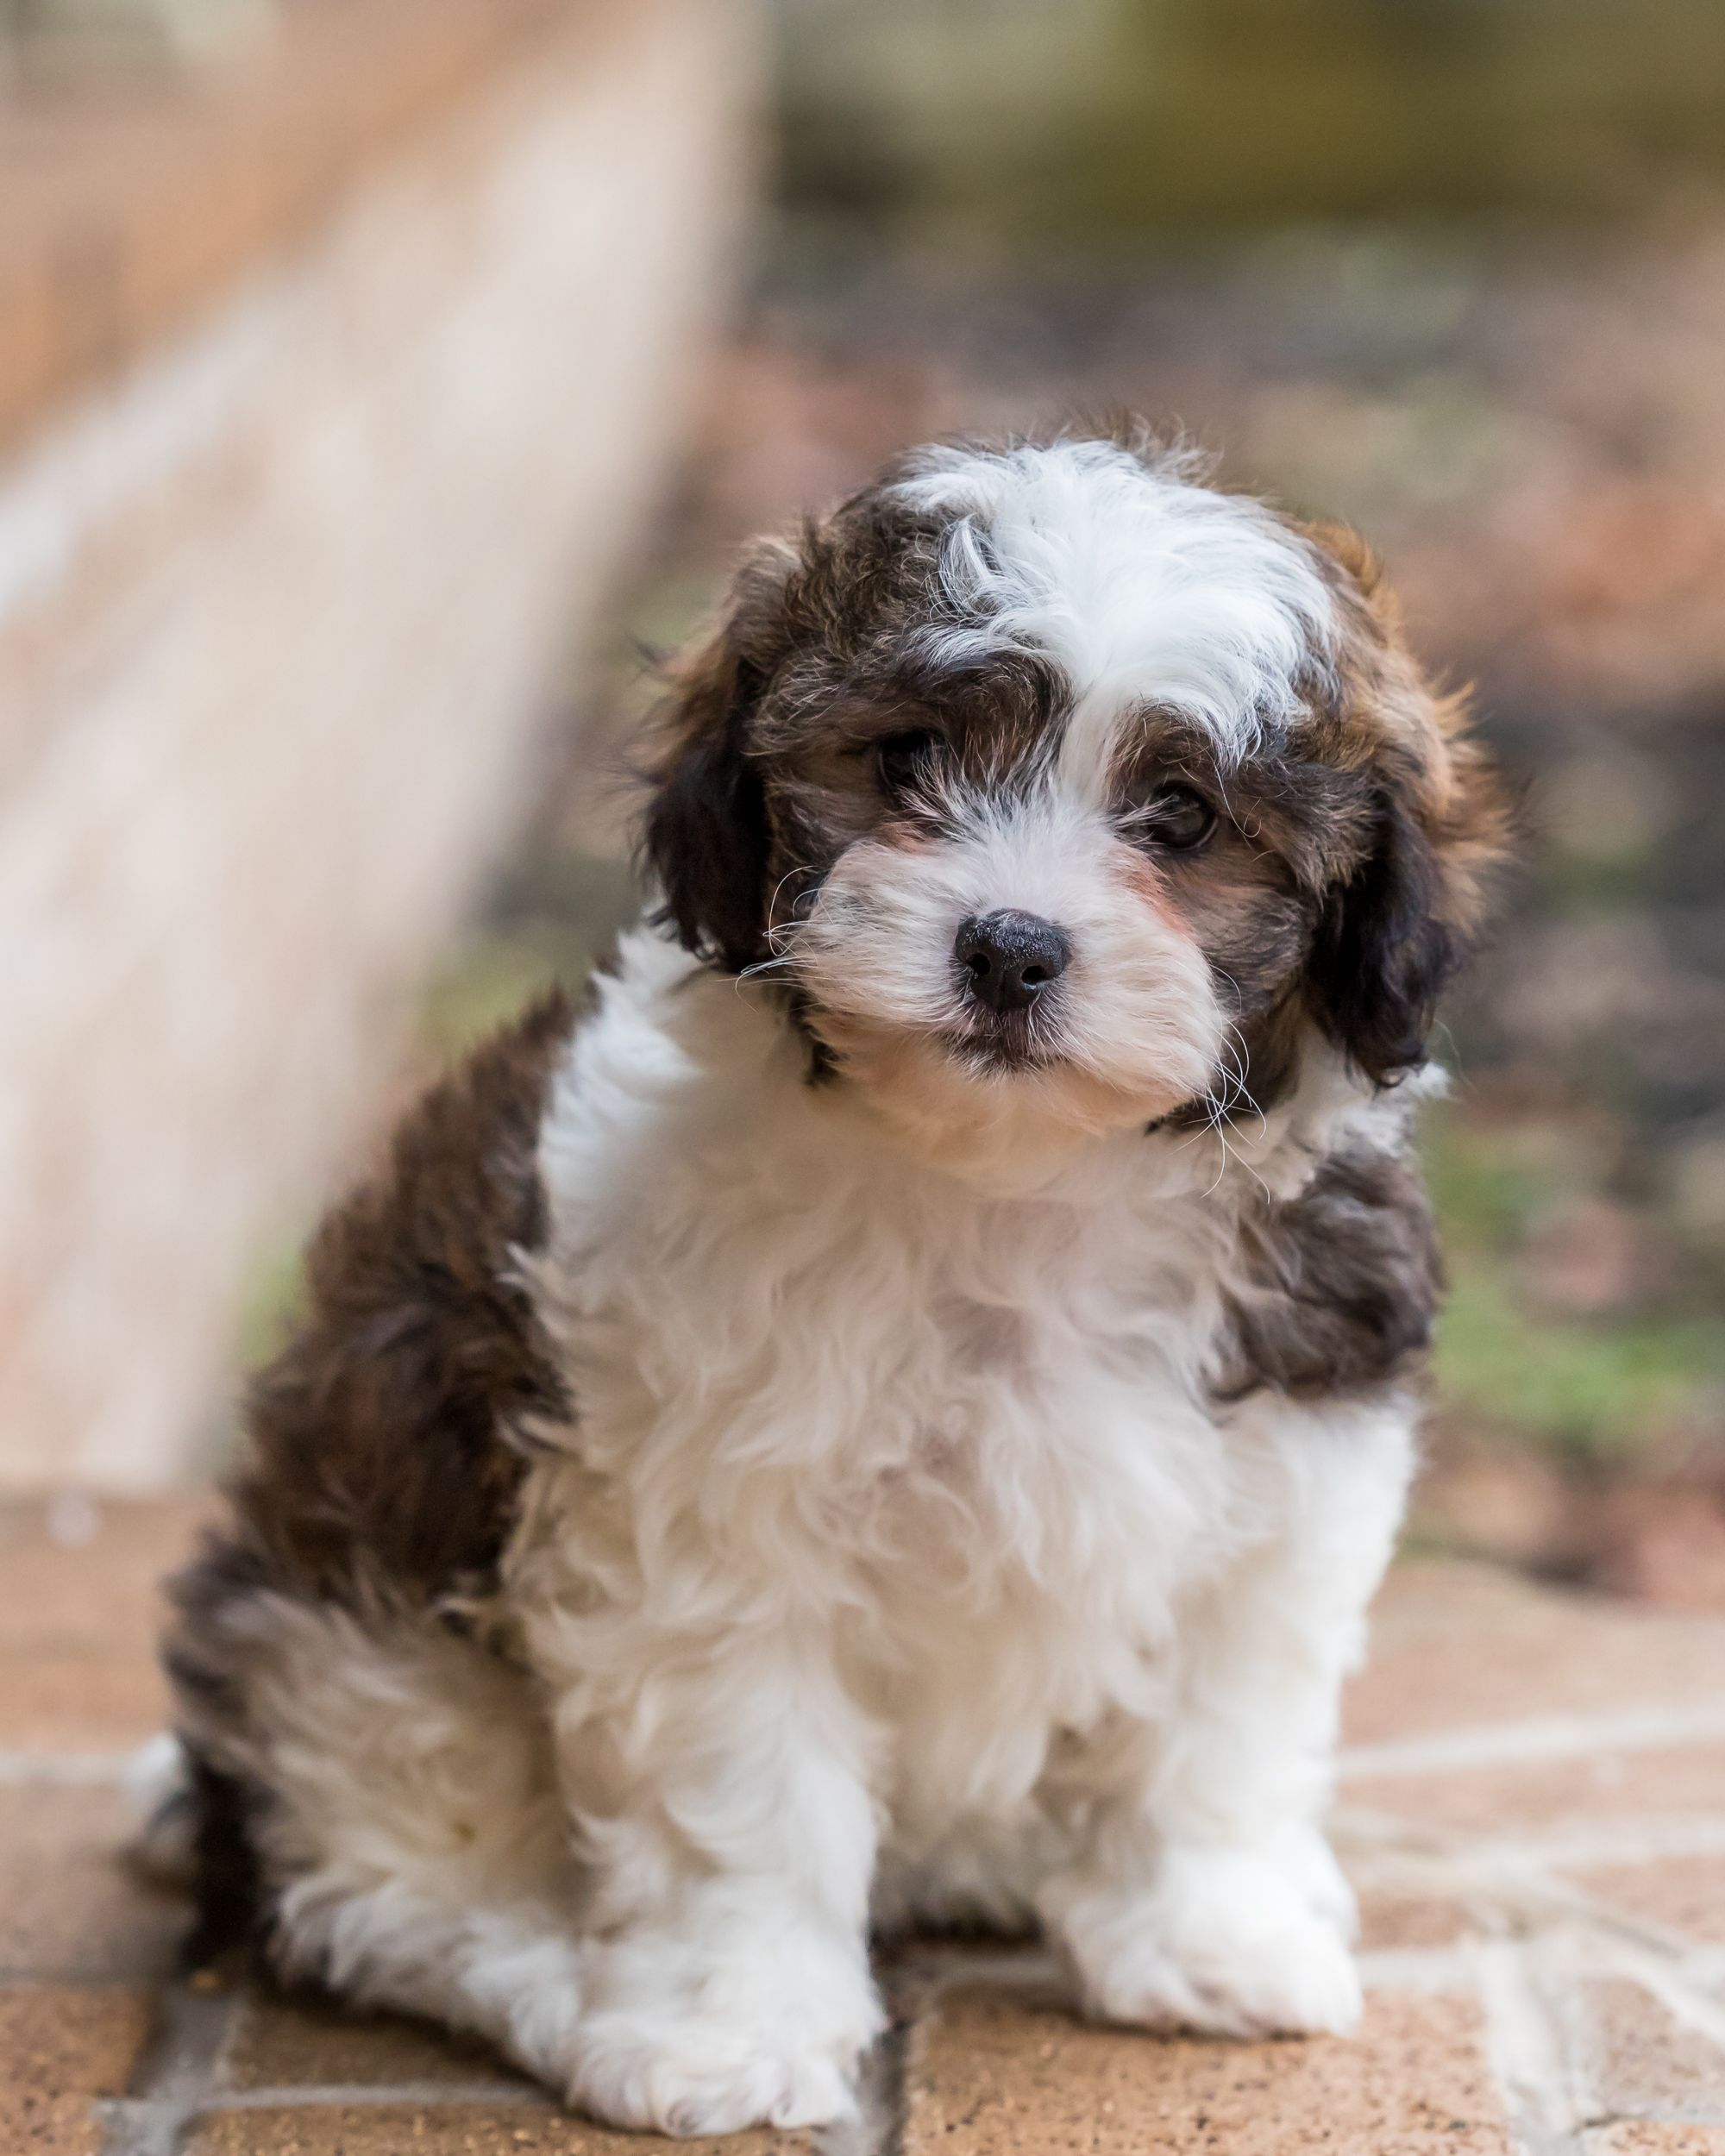 Shichon Puppies For Sale Near Me : shichon, puppies, Berry, Marie, Critters, Zuchon, Puppies, Sale,, Shichon, Puppies,